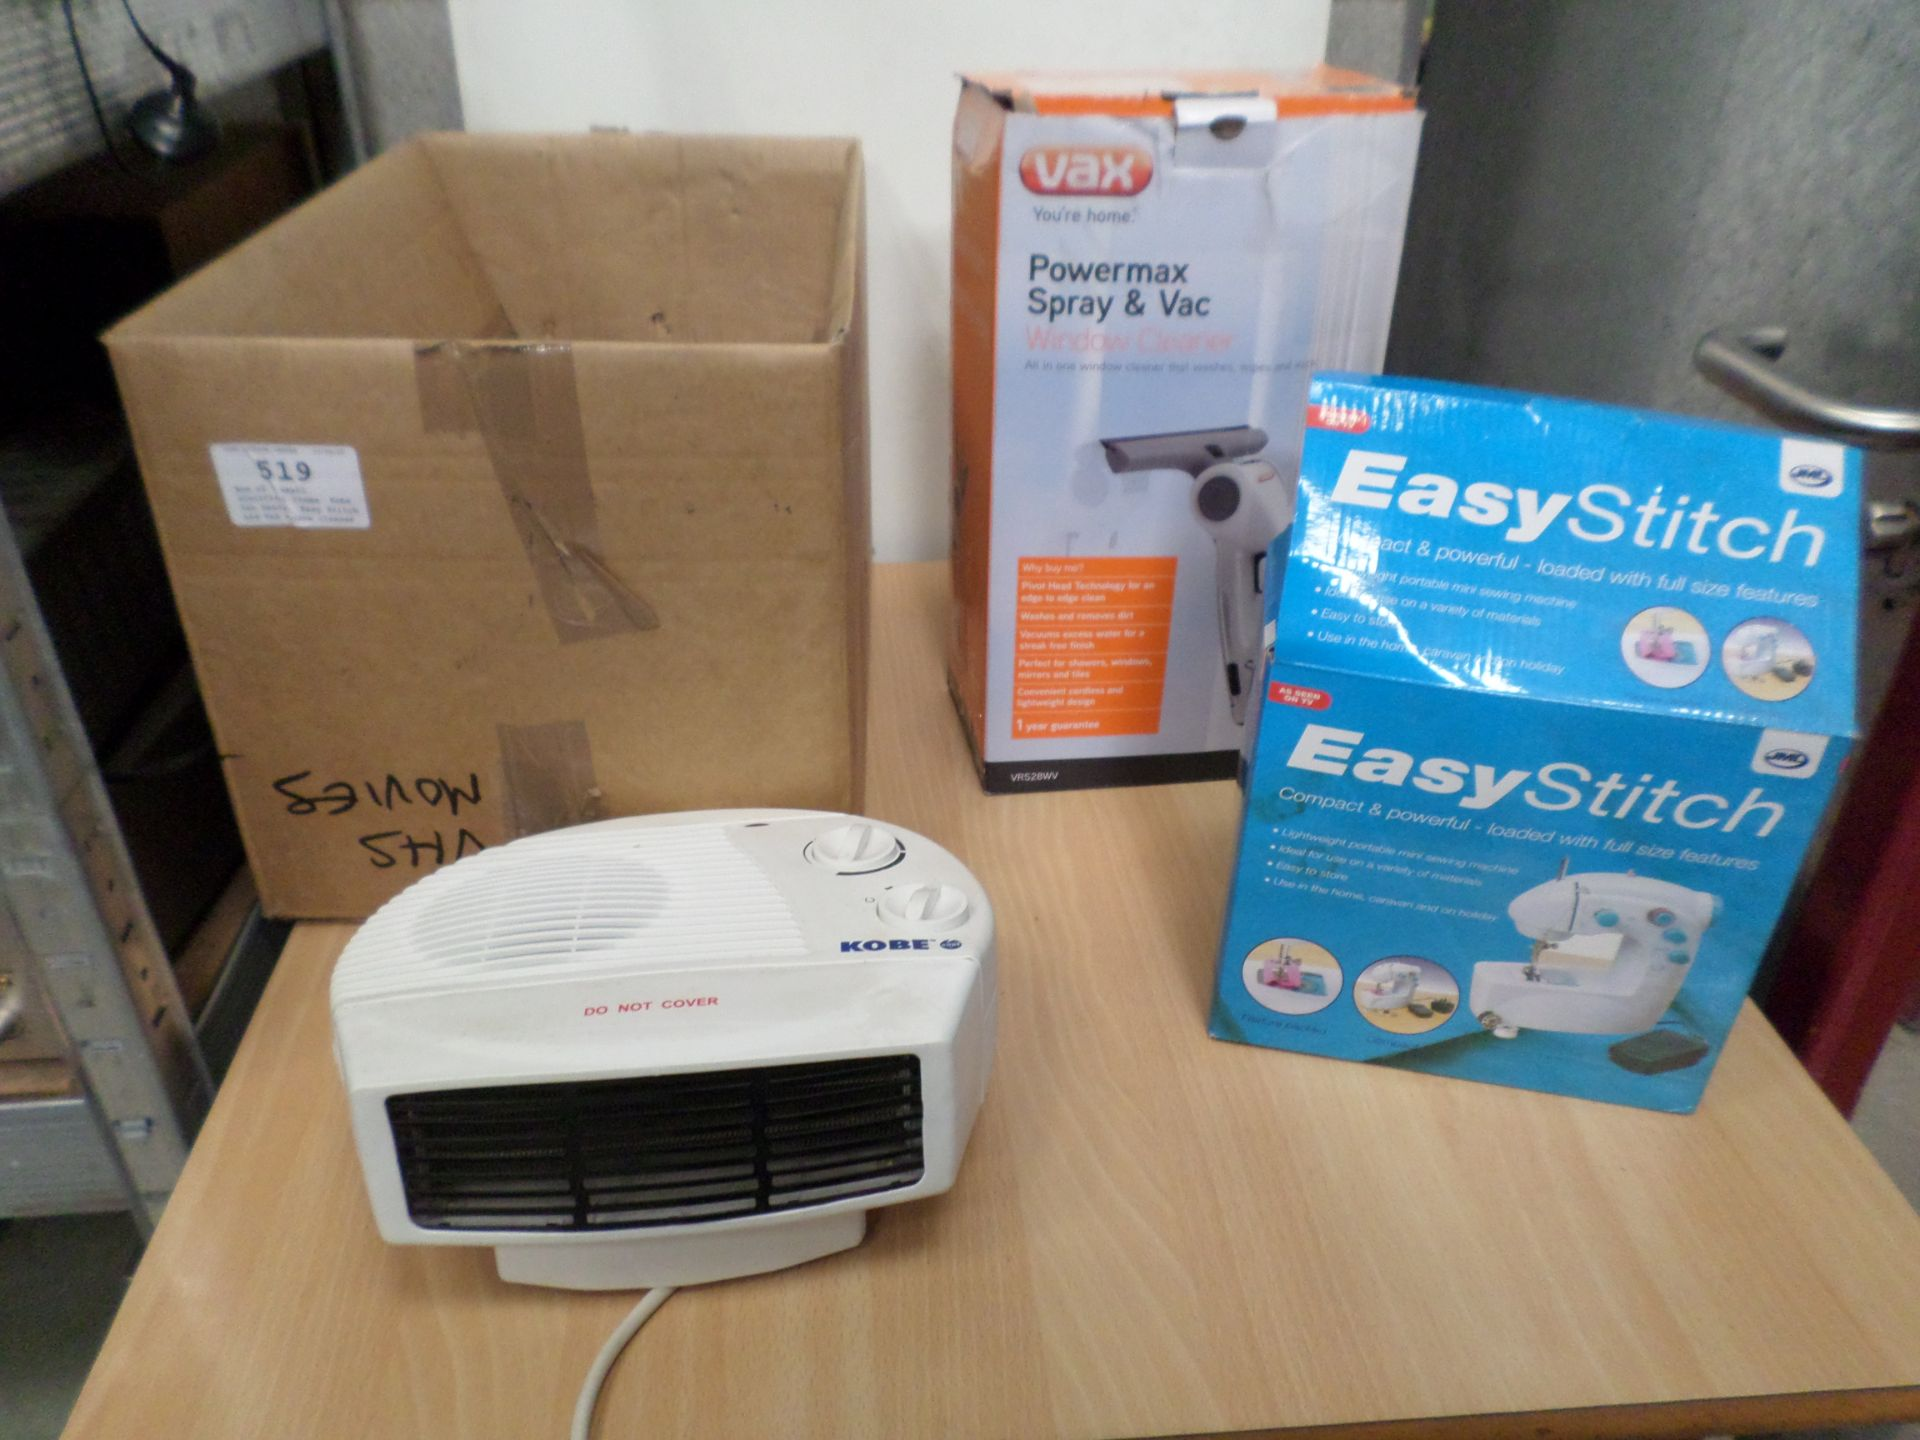 Lot 519 - Box of 3 small electrical items, Kobe fan heater, Easy Stitch and Vax window cleaner